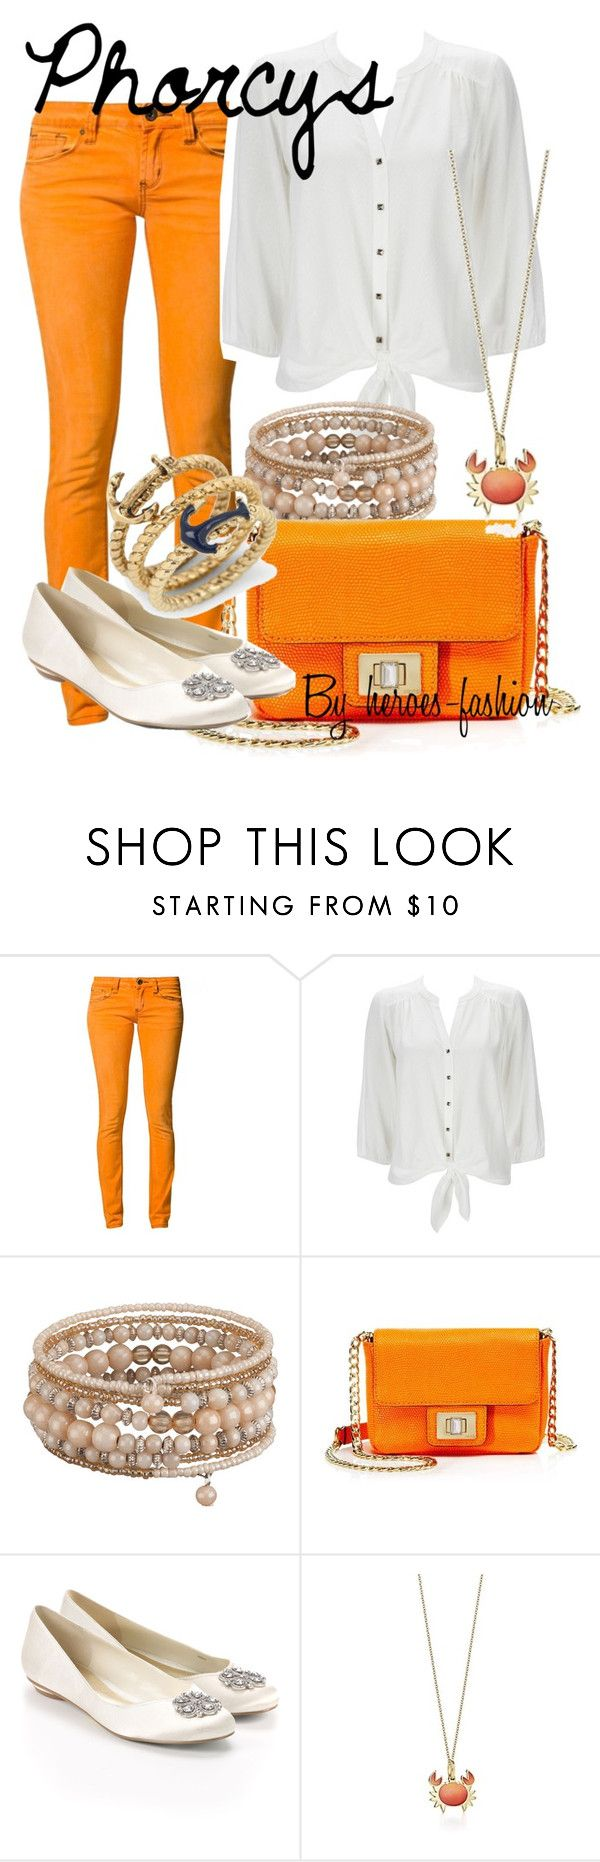 """""""Phorcys"""" by heroes-fashion ❤ liked on Polyvore featuring One Green Elephant, Wallis, Juicy Couture, Monsoon, Tiffany & Co. and C. Wonder"""